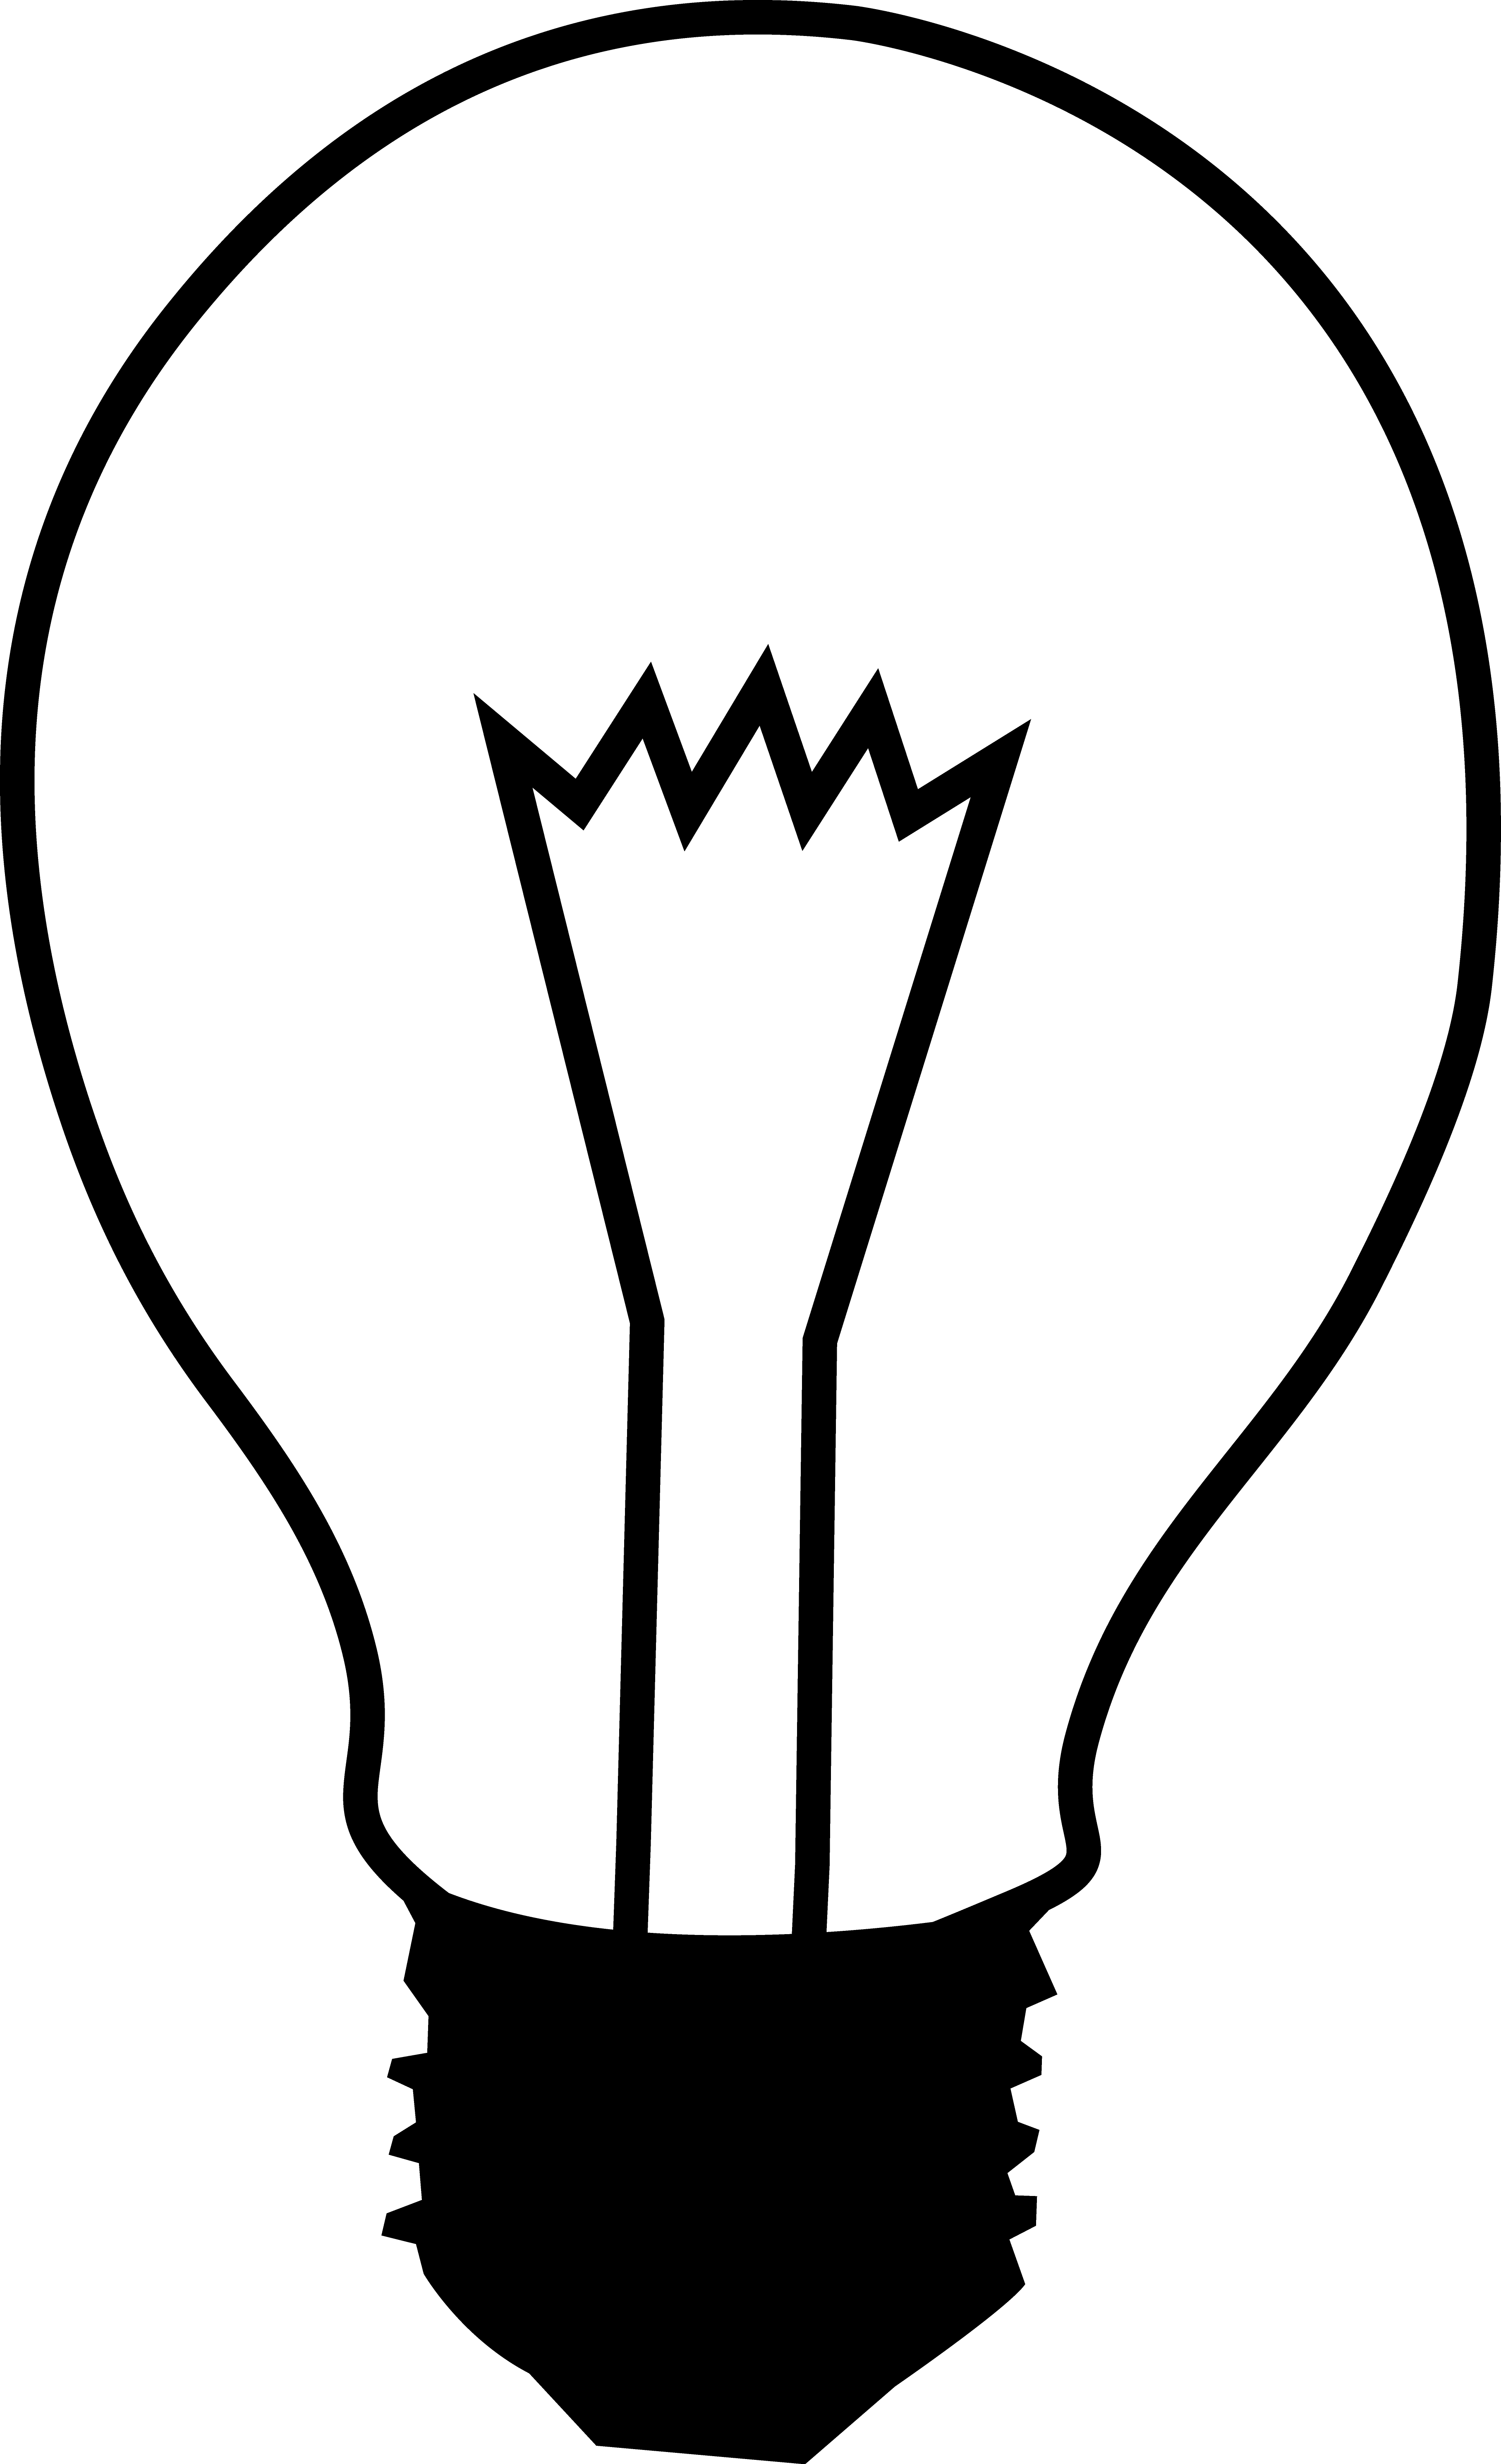 Electric . Lamp clipart energy transformation